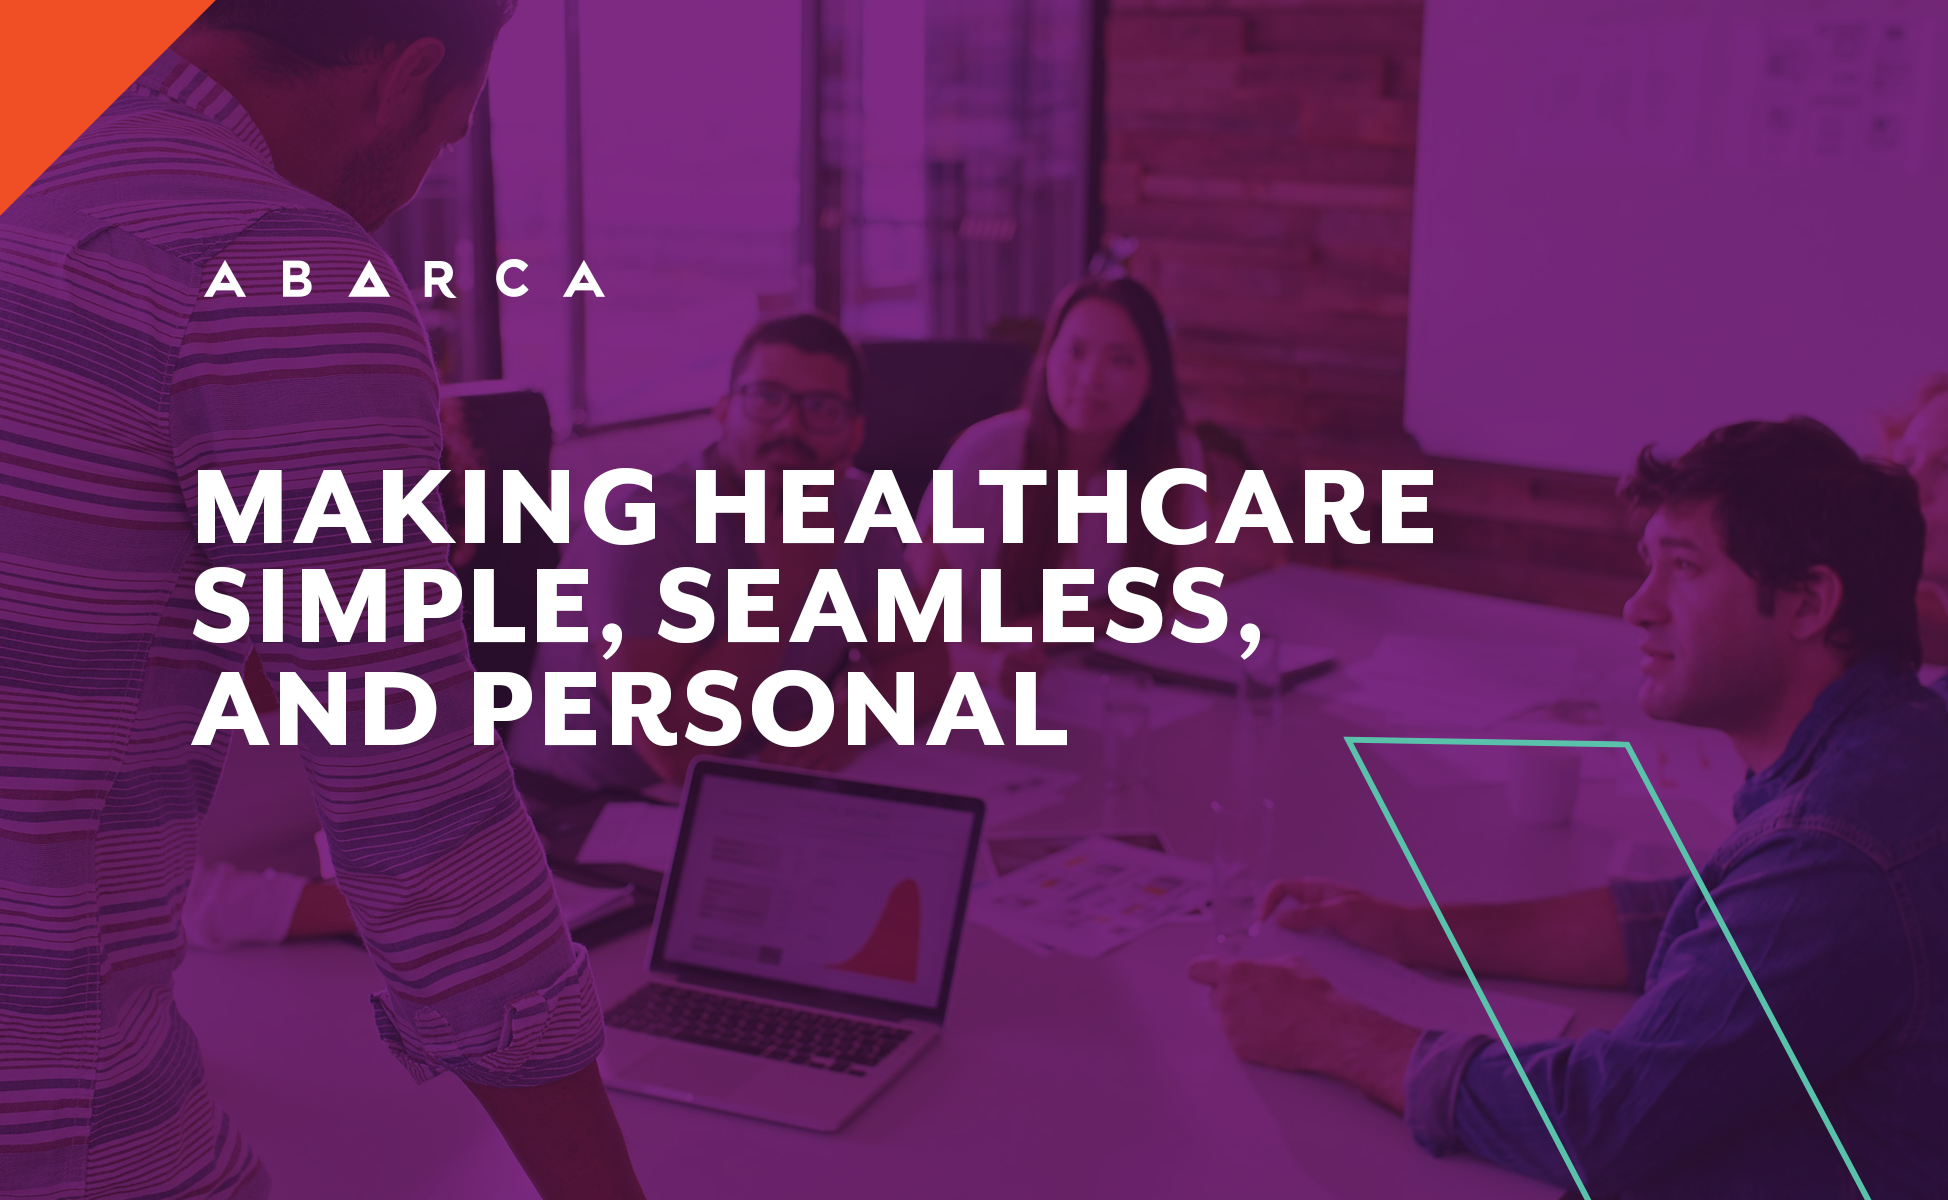 Abarca and Triple-S have worked together to create new ways to increase medication adherence and improve the experience for members.